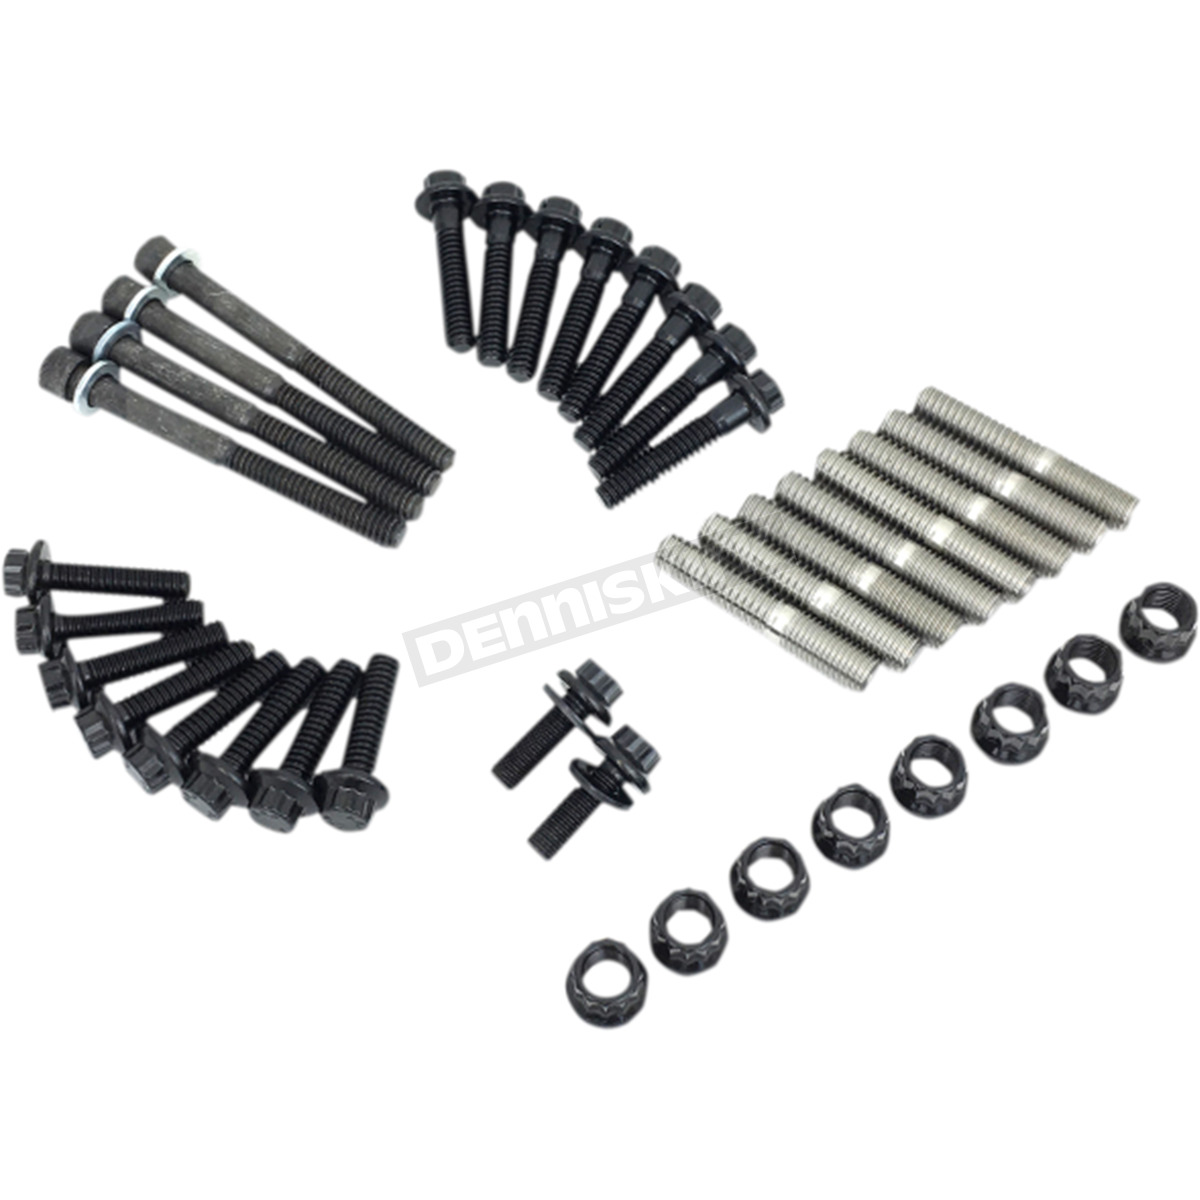 Feuling Parts 12 Point Internal Engine Fastener Kit for M